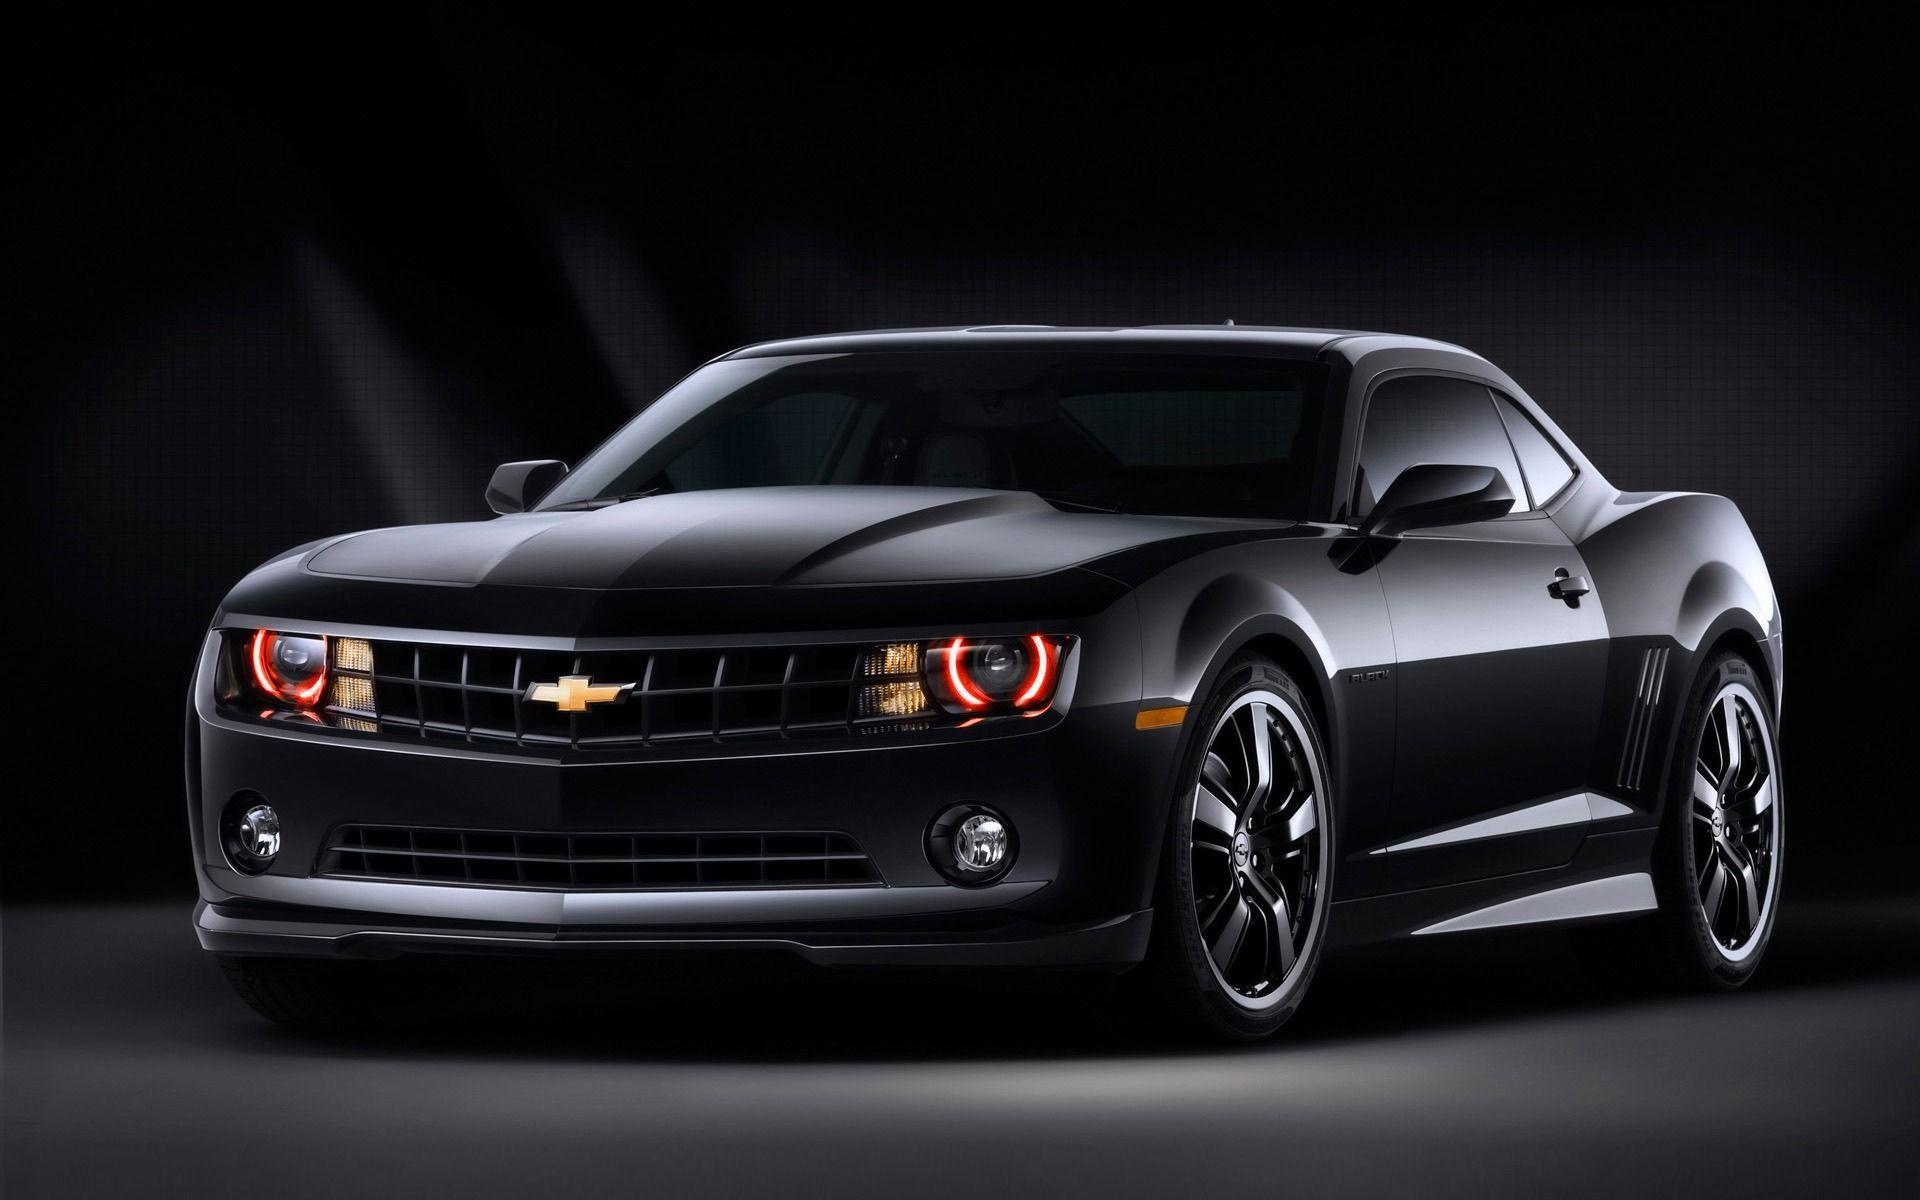 muscle-cars-hd-pictures- (1) - Dhoomwallpaper.com | Latest HD ...